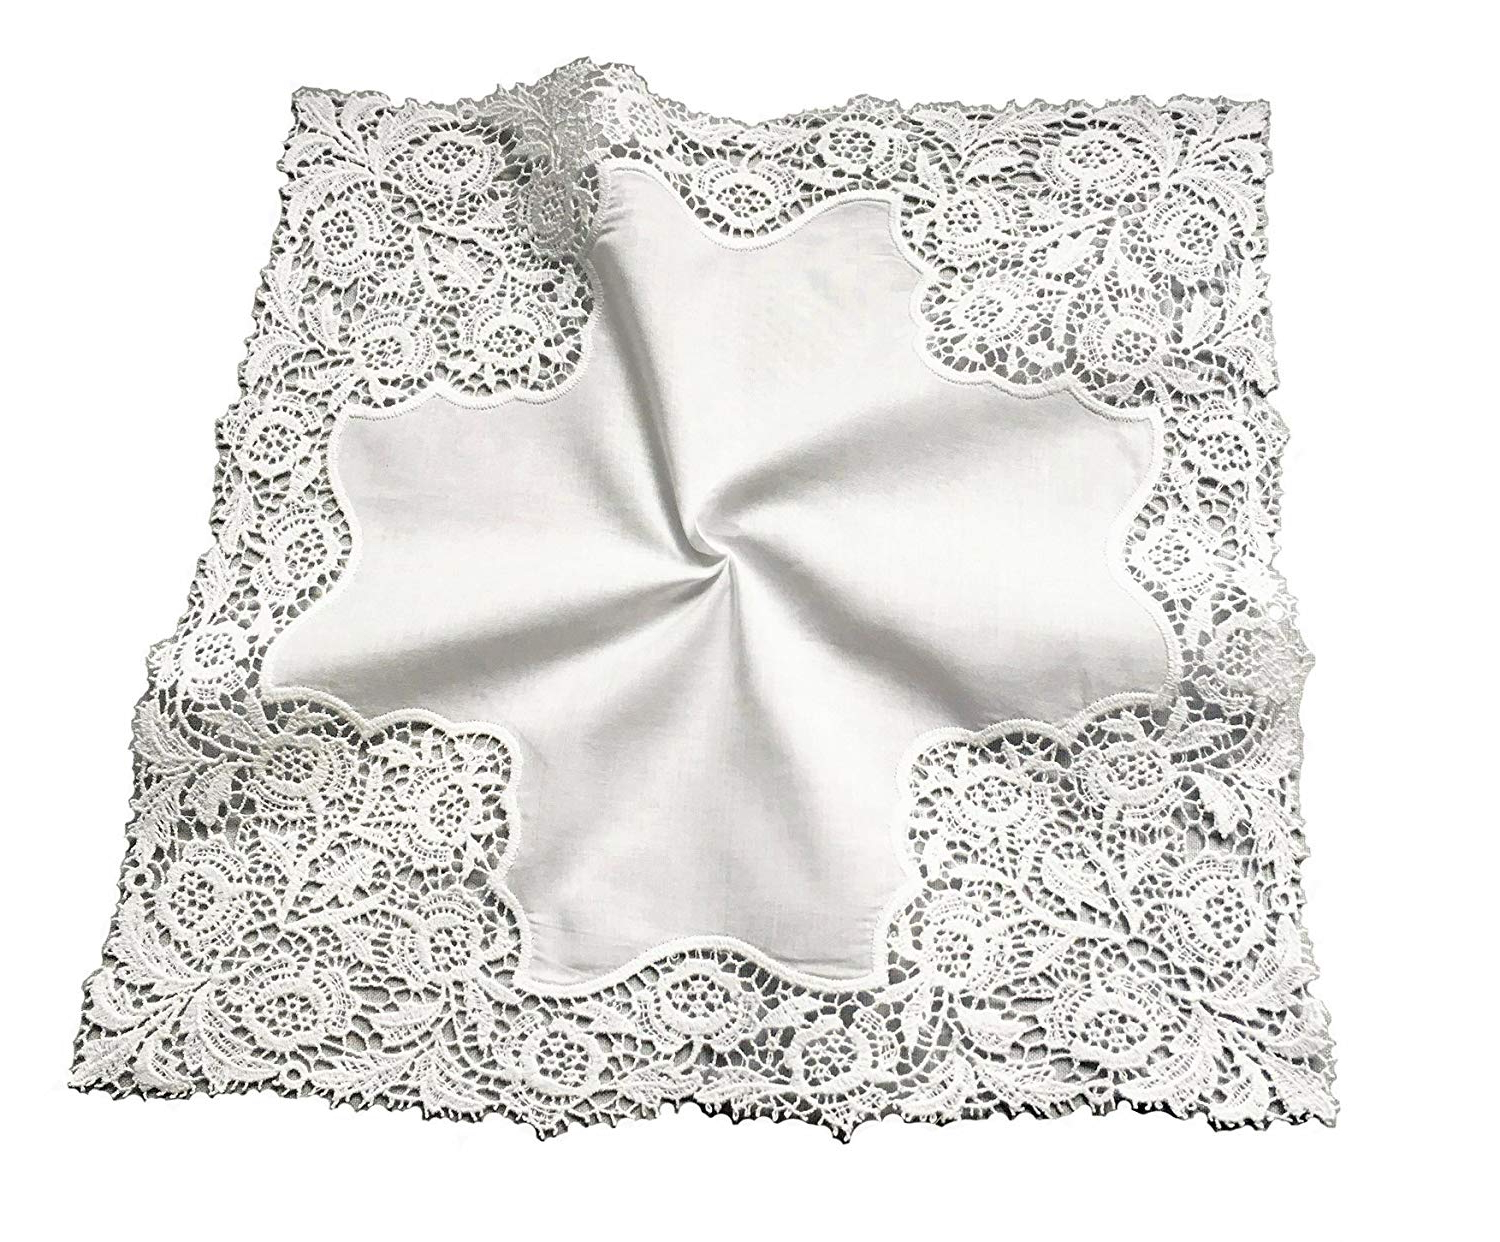 Most Popular Cotton Classic Toast Window Pane Pattern And Crotchet Trim Tiers Inside Mybutterflybasket Floral Wedding Crochet Embroidery Lace Handkerchief For Bride & Ladies/white,a (View 16 of 20)